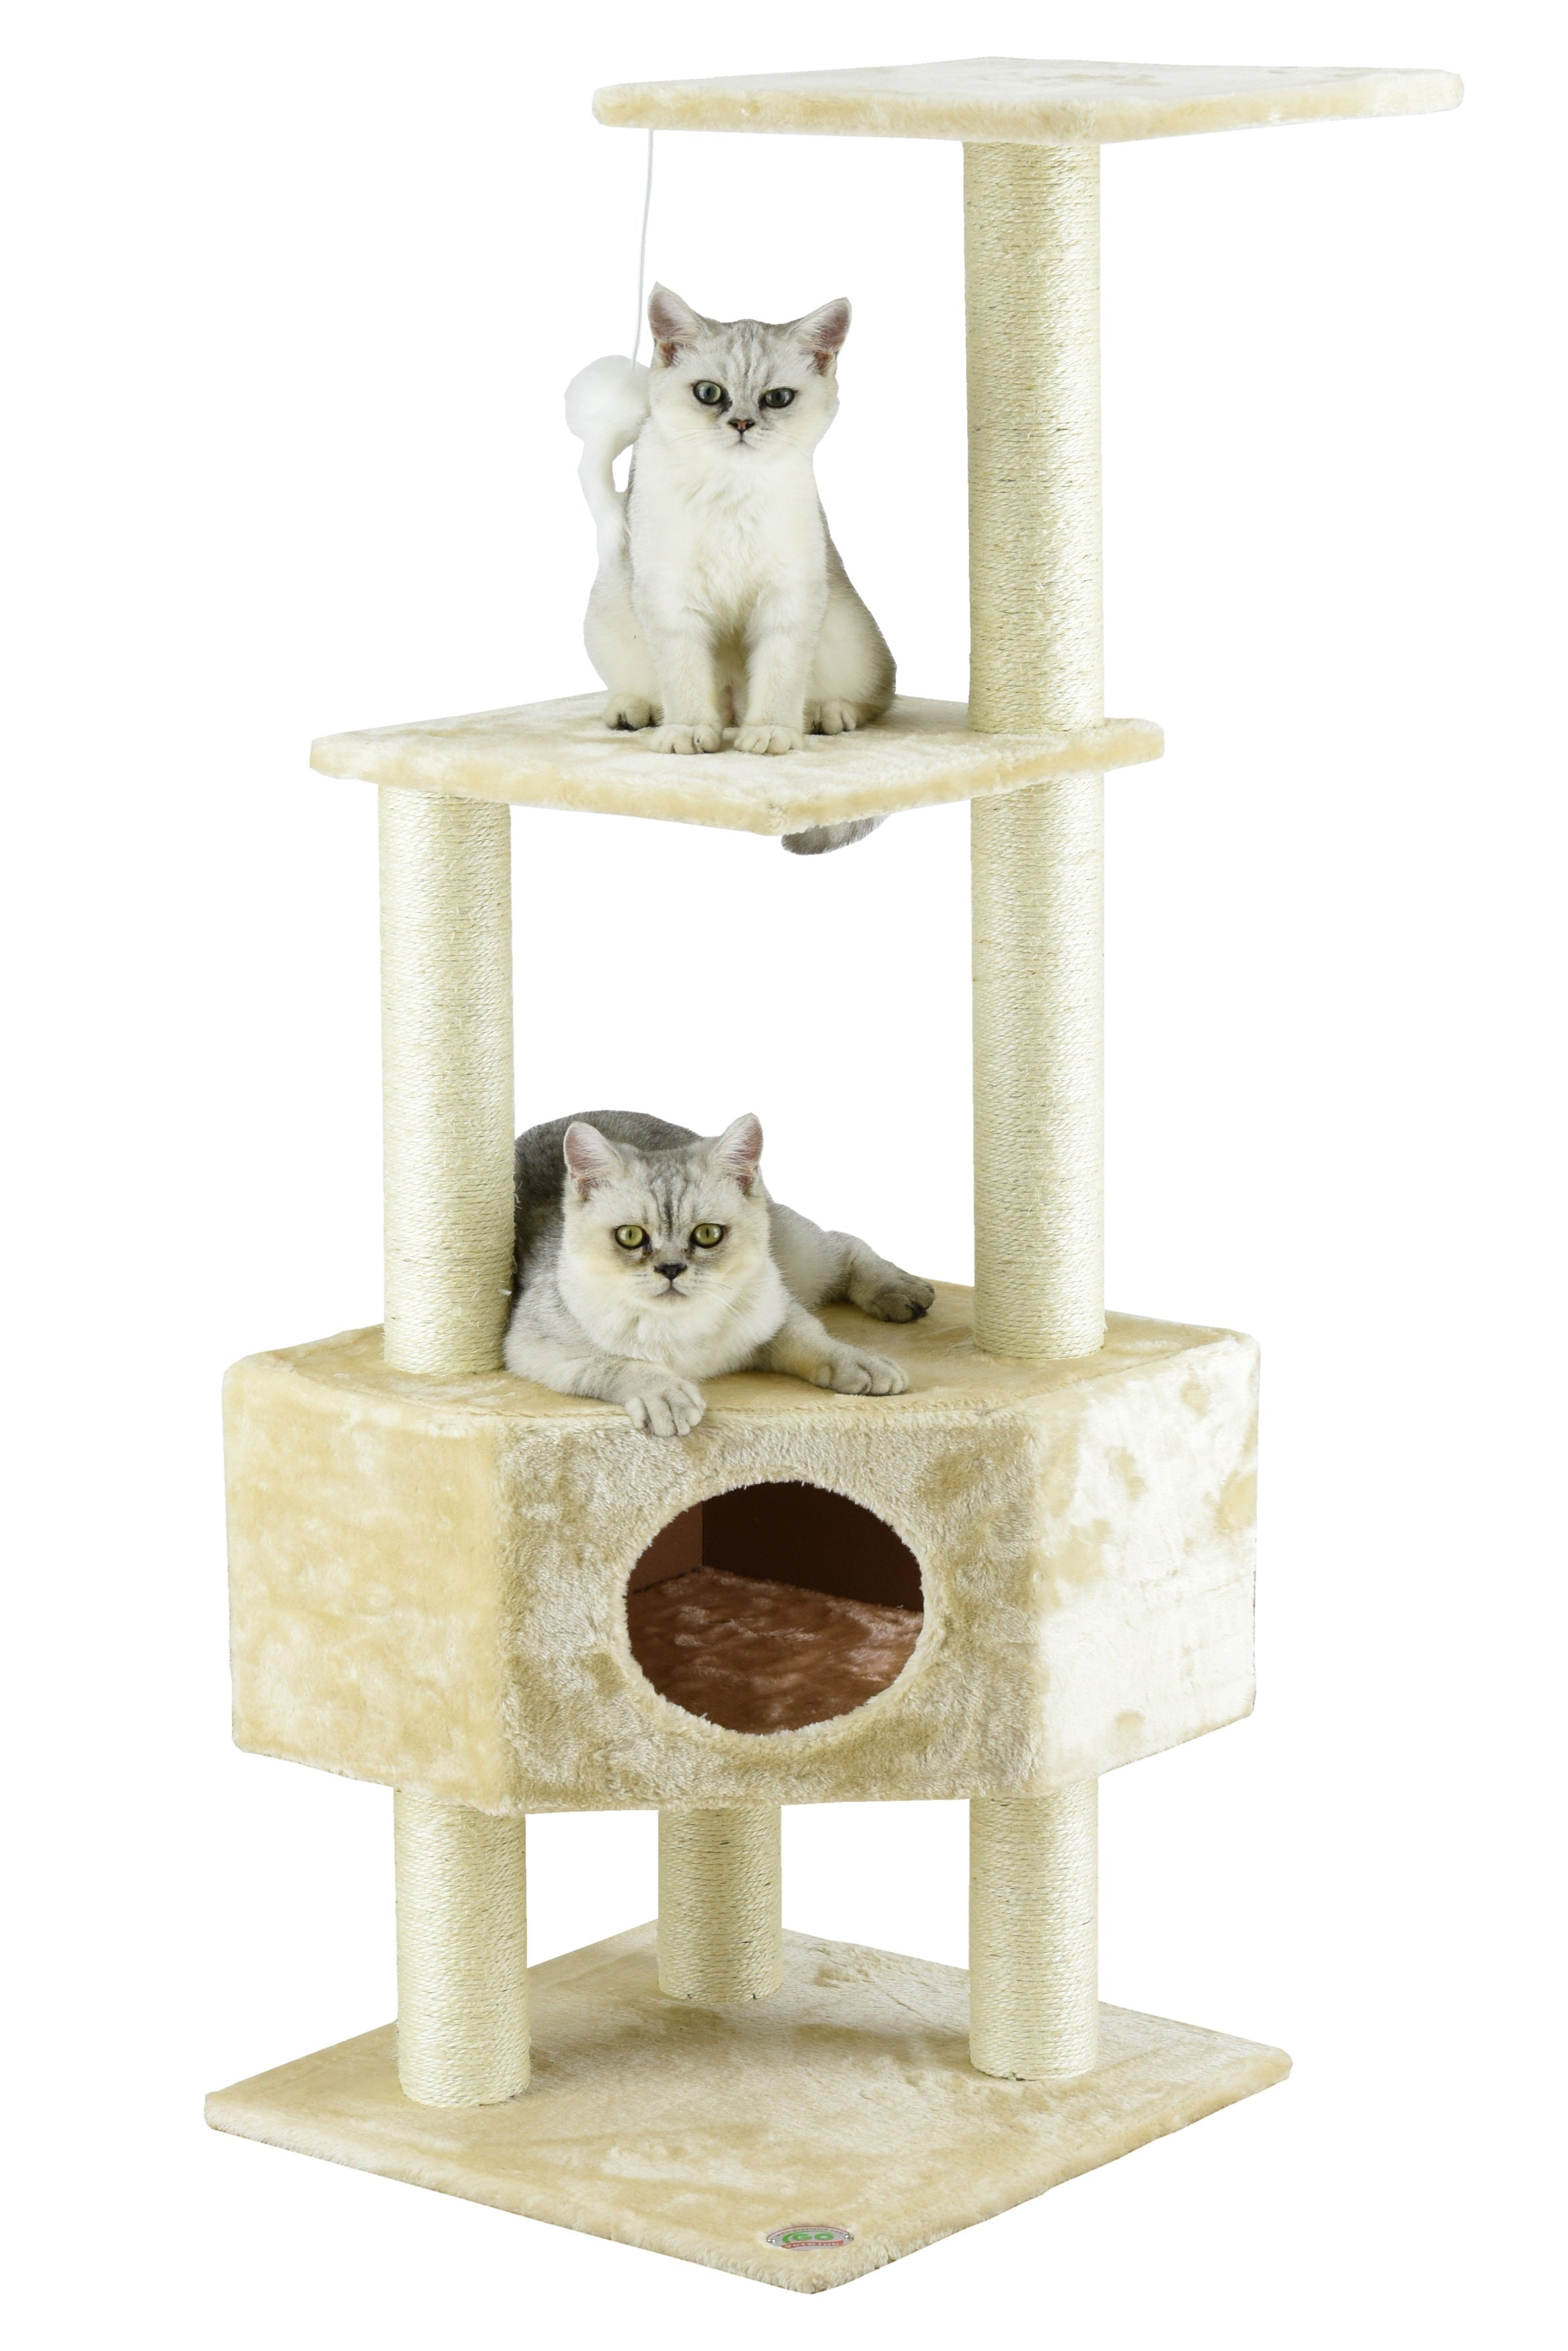 furniture choice best products product play rakuten tree bestchoiceproducts beige pet scratcher cat condo house shop